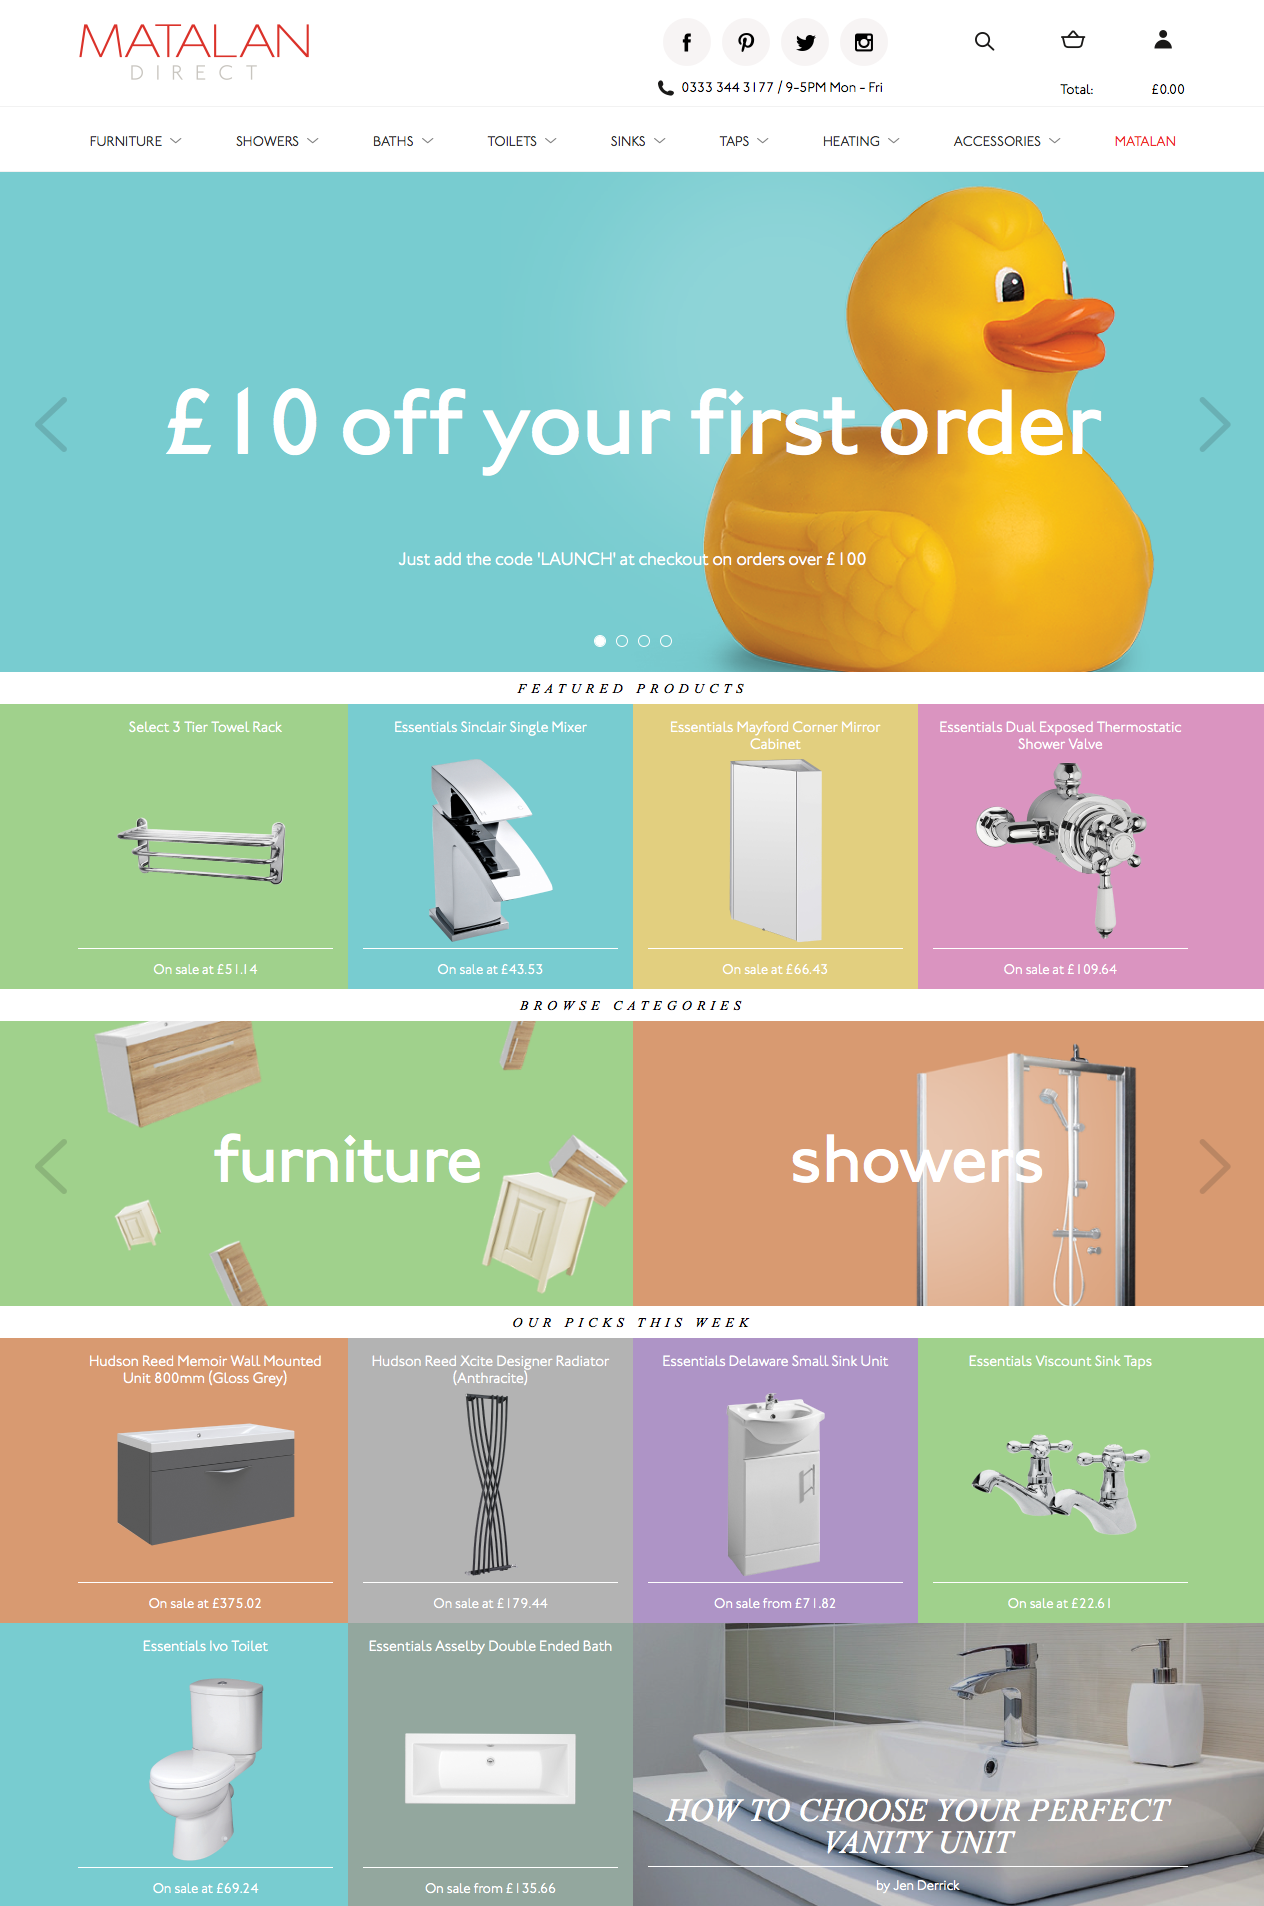 Matalan Direct home page